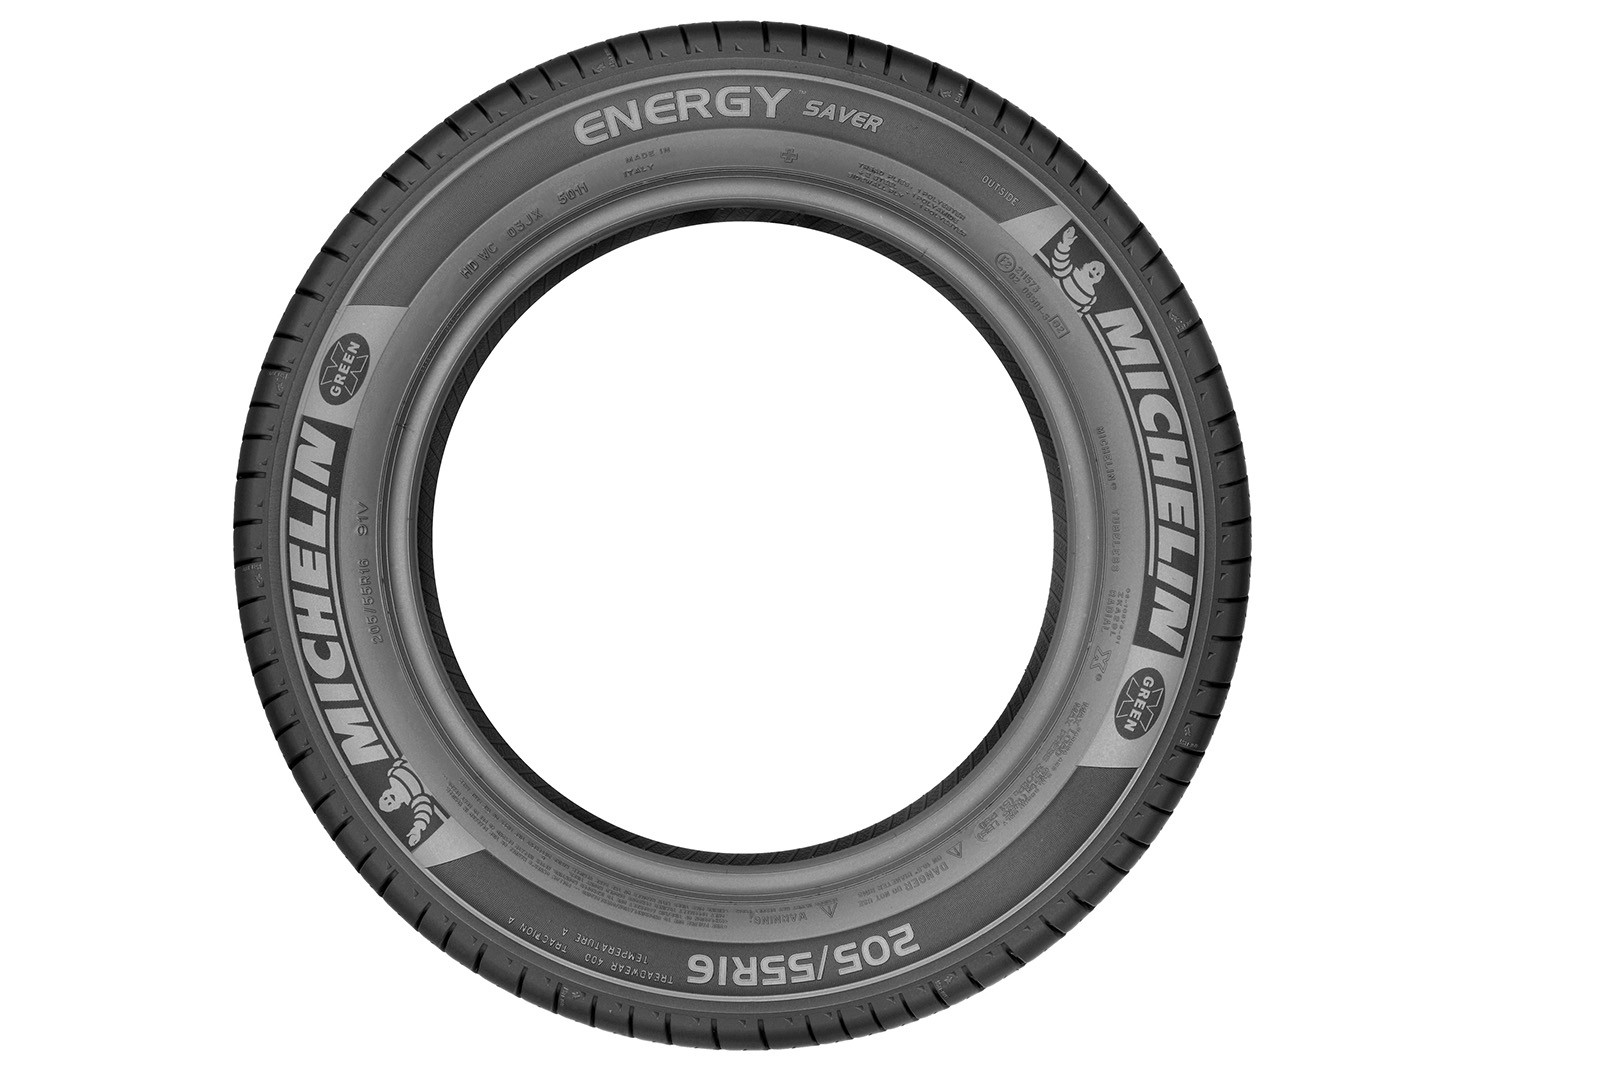 Foto michelin energy saver 018 neumaticos michelin for Energy saver plus